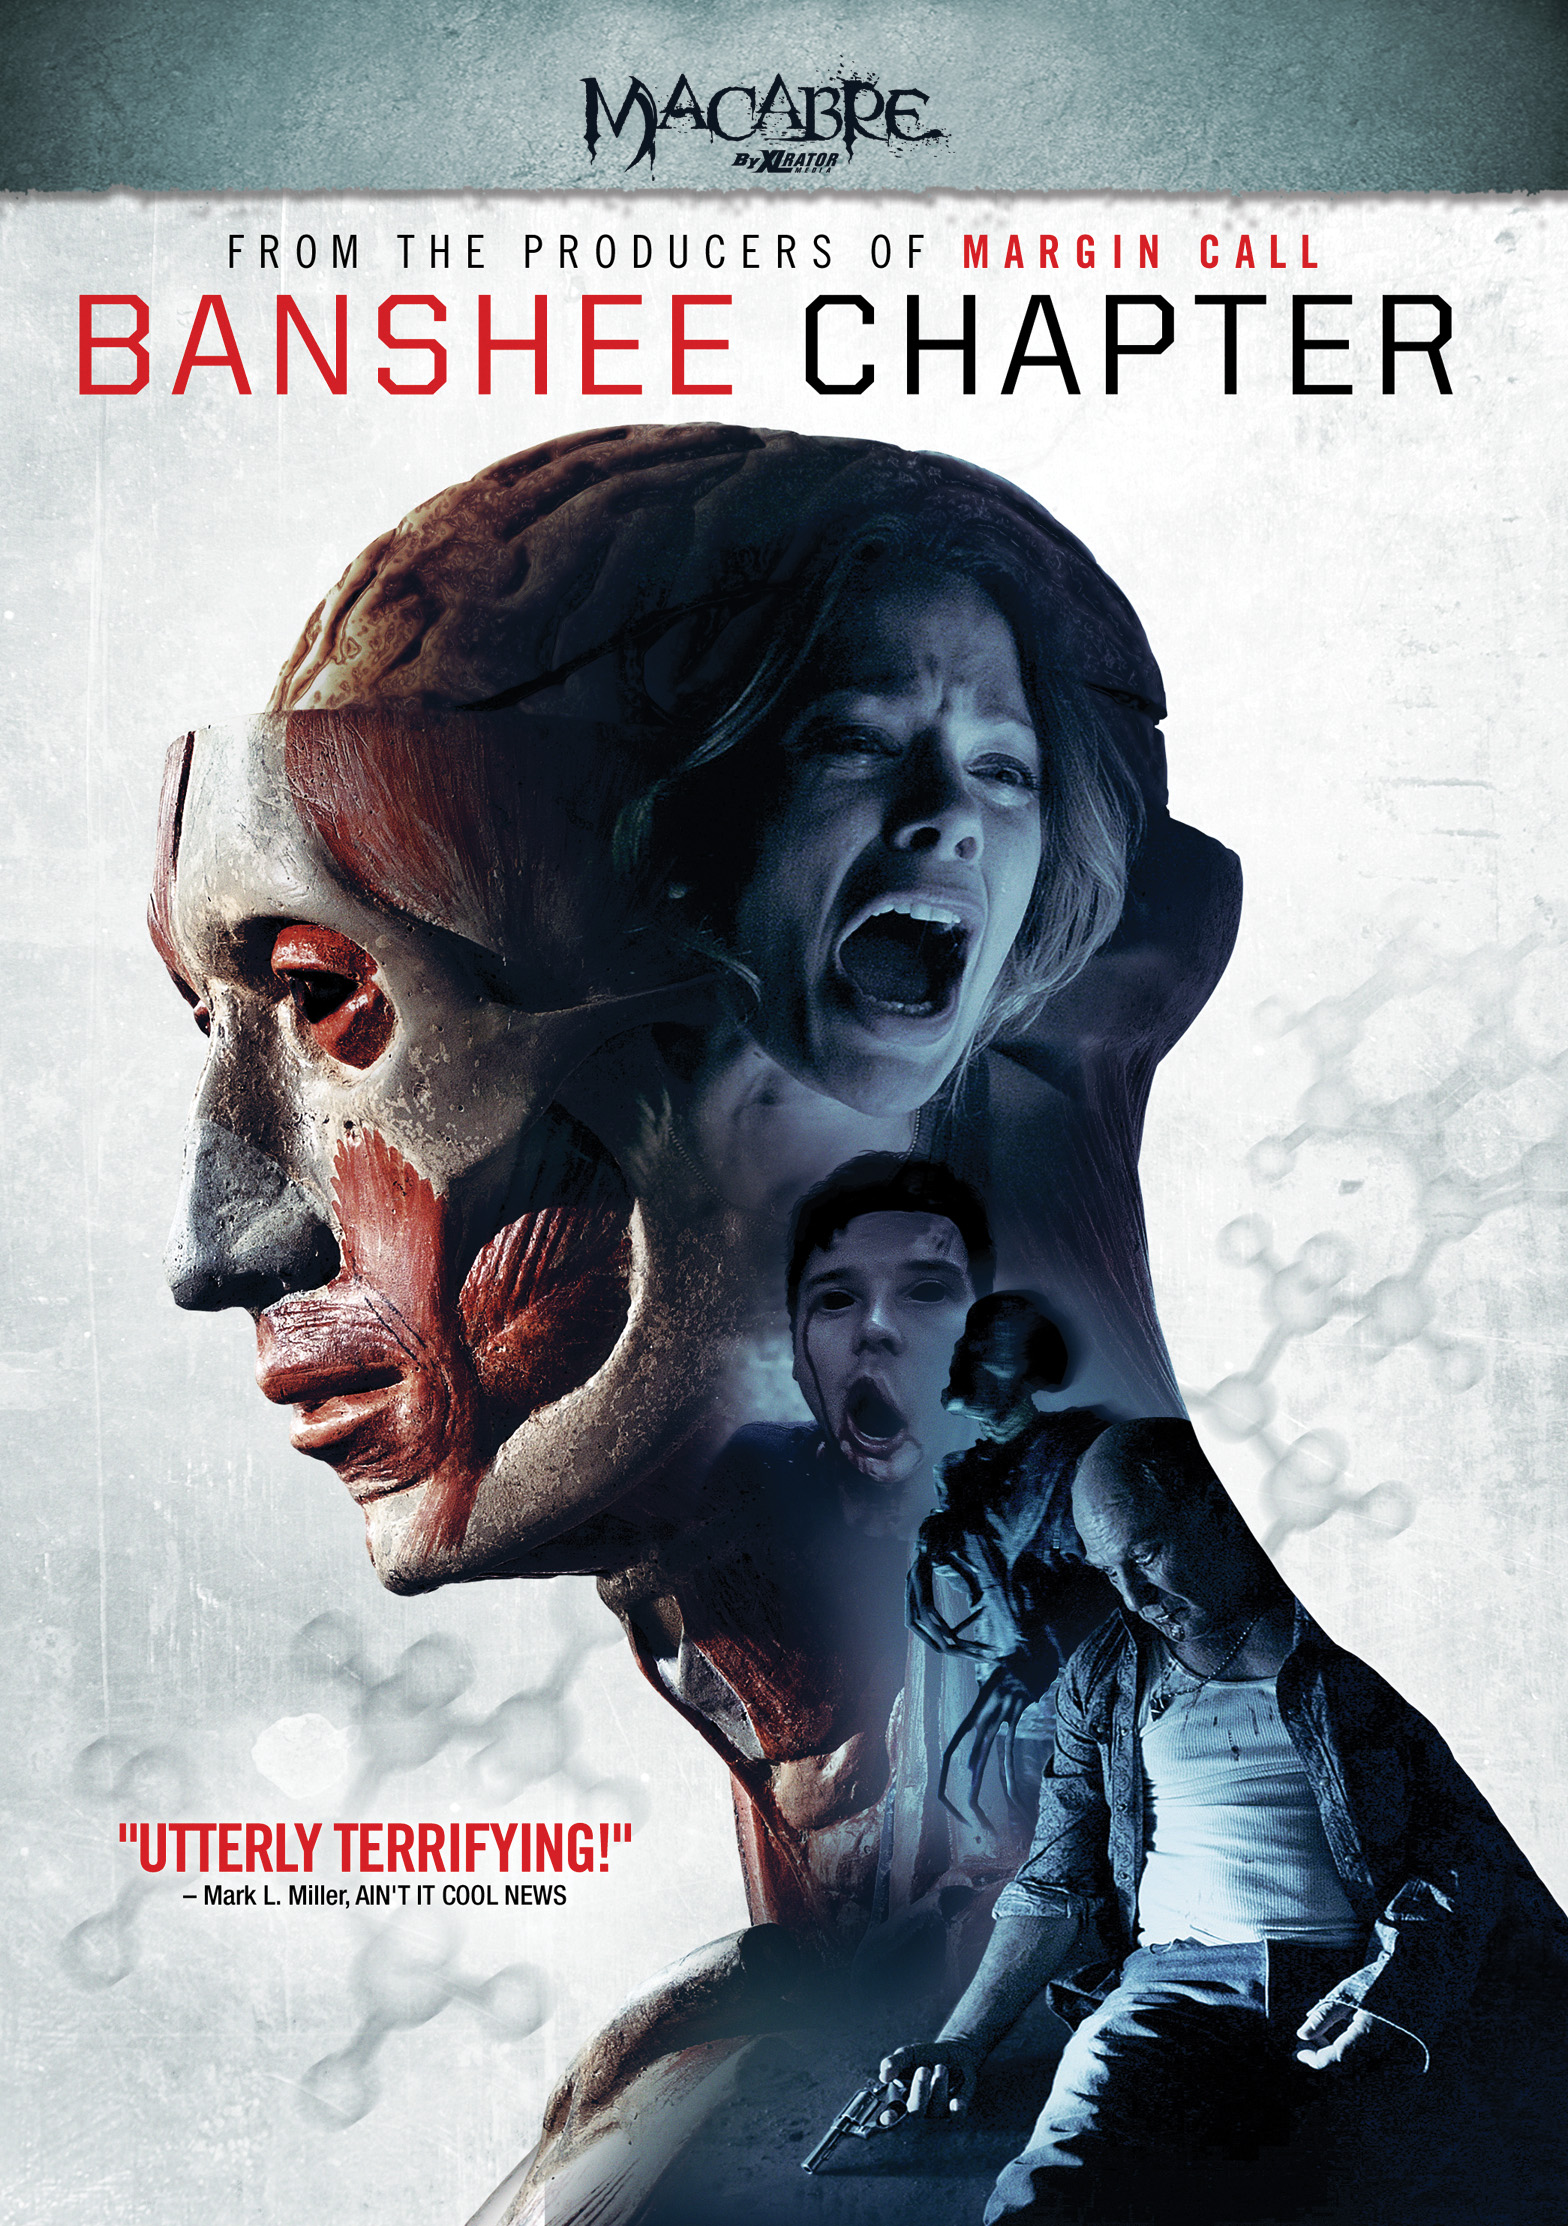 BansheeChapter2D flat The Banshee Chapter to Uncover Government Secrets with DVD Release